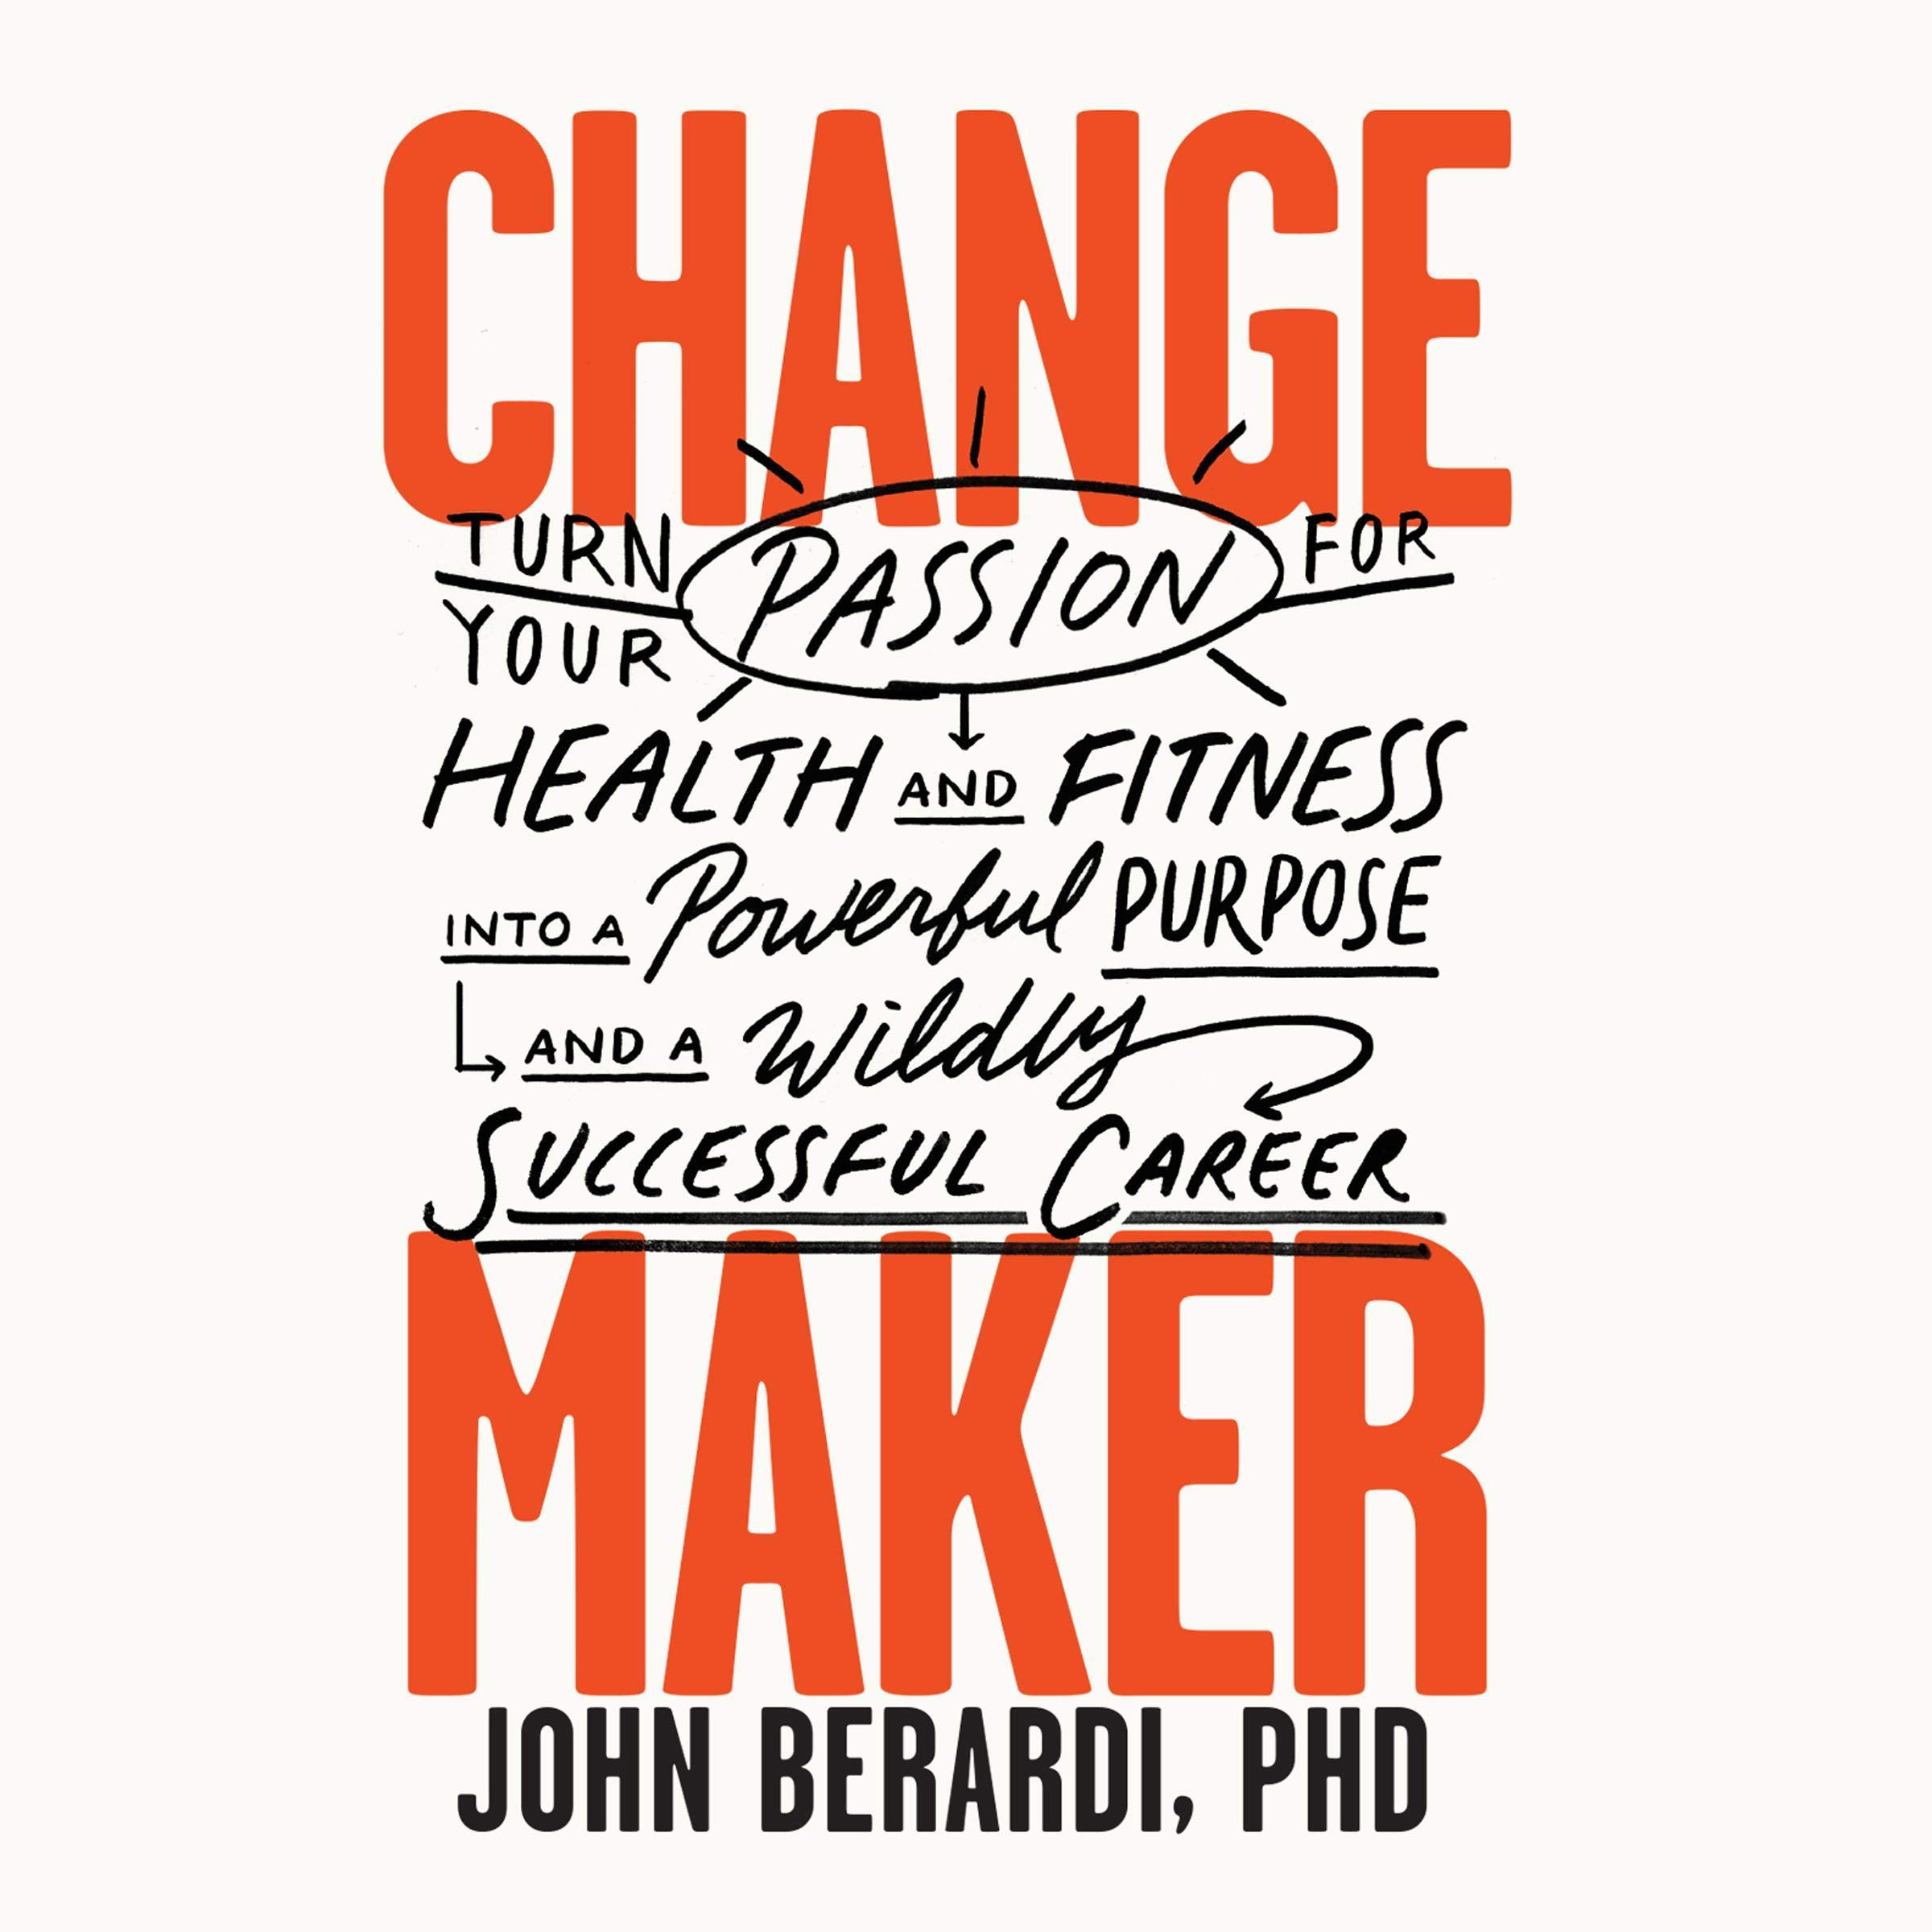 Change Maker  Turn Your Passion For Health And Fitness Into A Powerful Purpose And A Wildly Successful Career